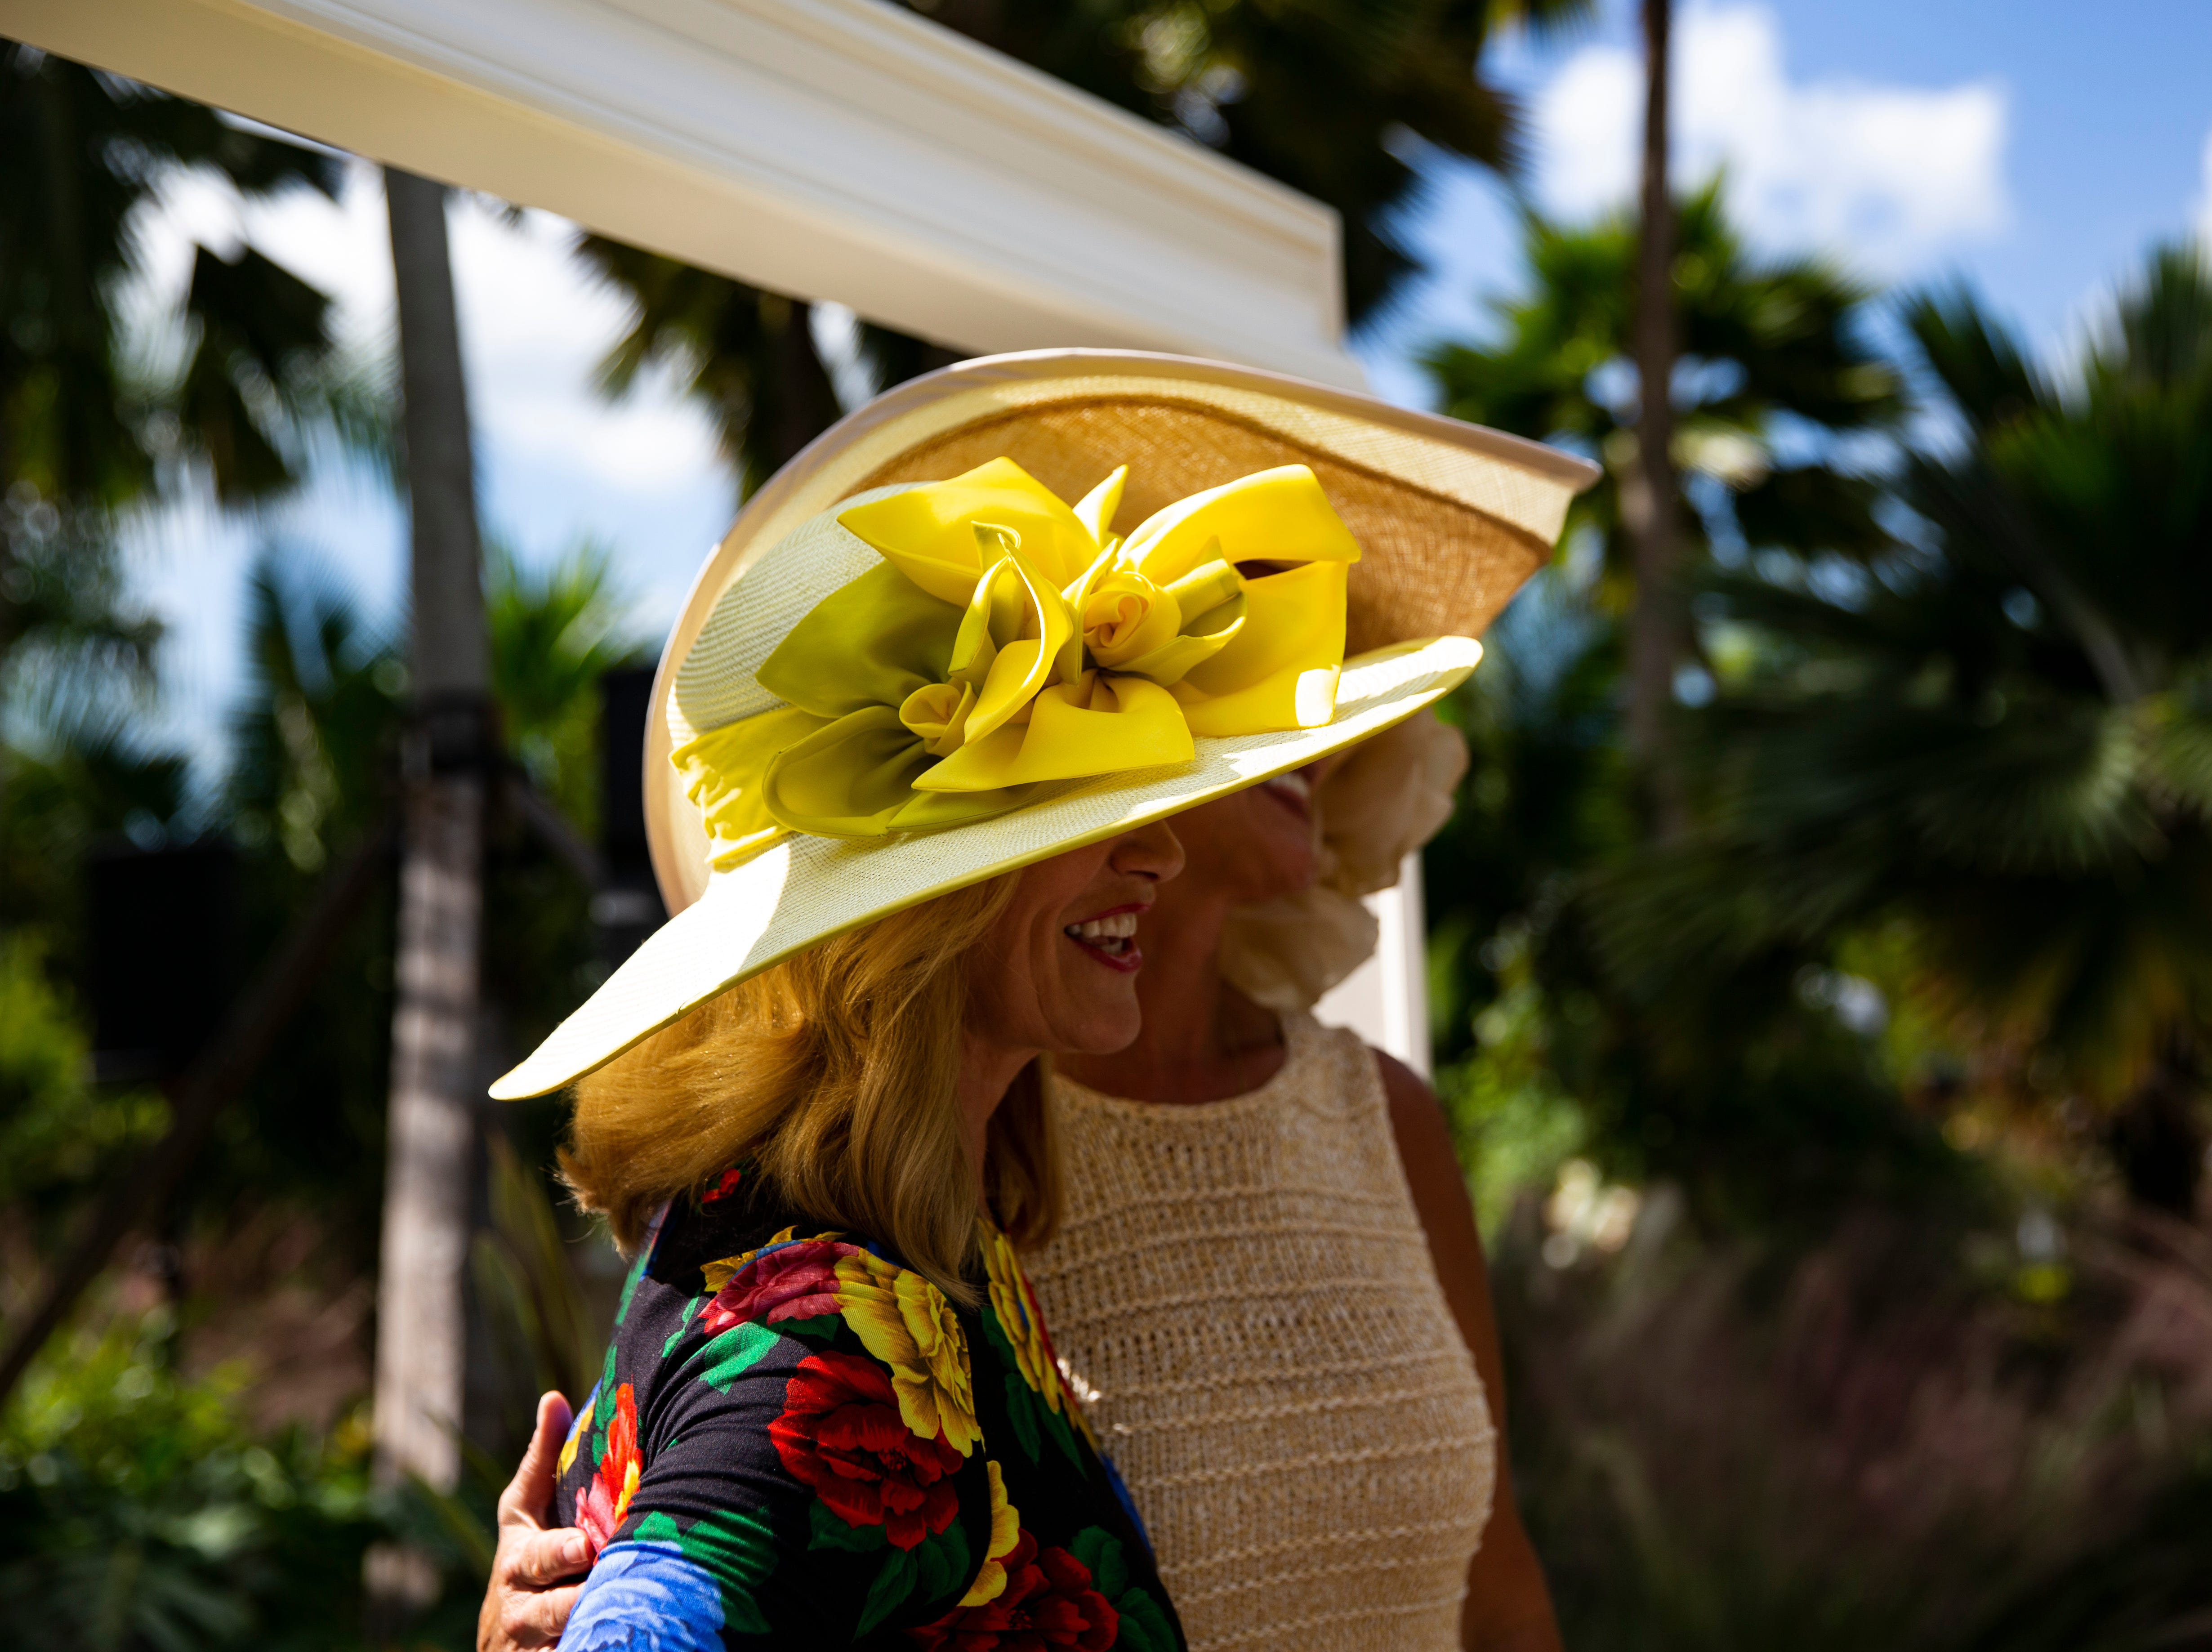 The 15th annual Hats in Garden fundraiser hosted at the Naples Botanical Garden was themed Rubies and Roses, urging the guests to wear clothes and millinery matching the overall theme.